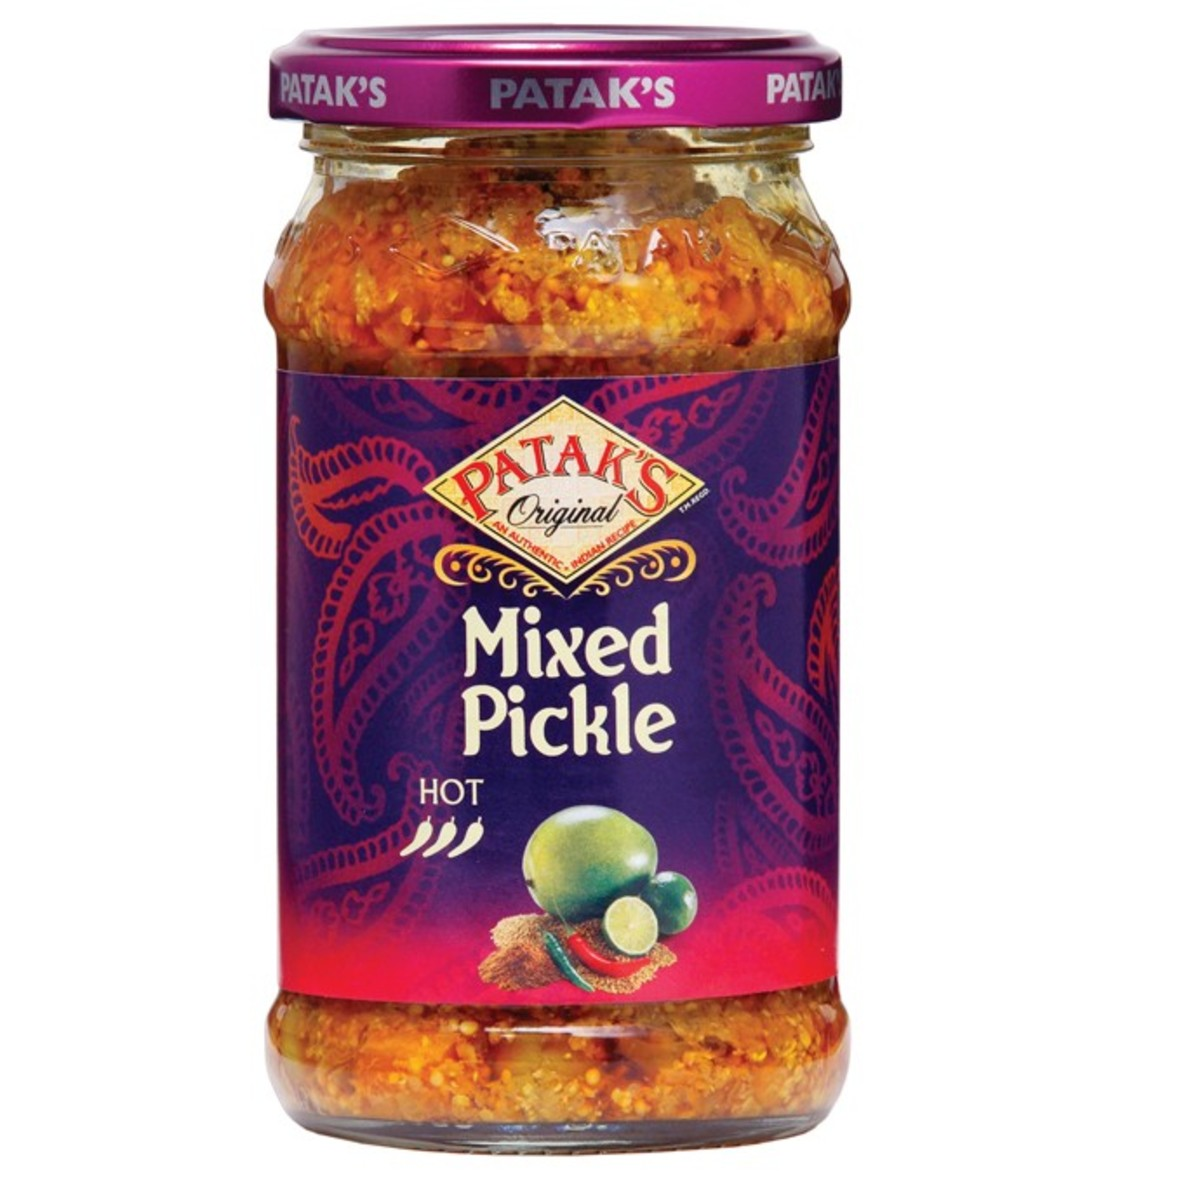 This is the secret ingredient - Patak's Mixed Pickle